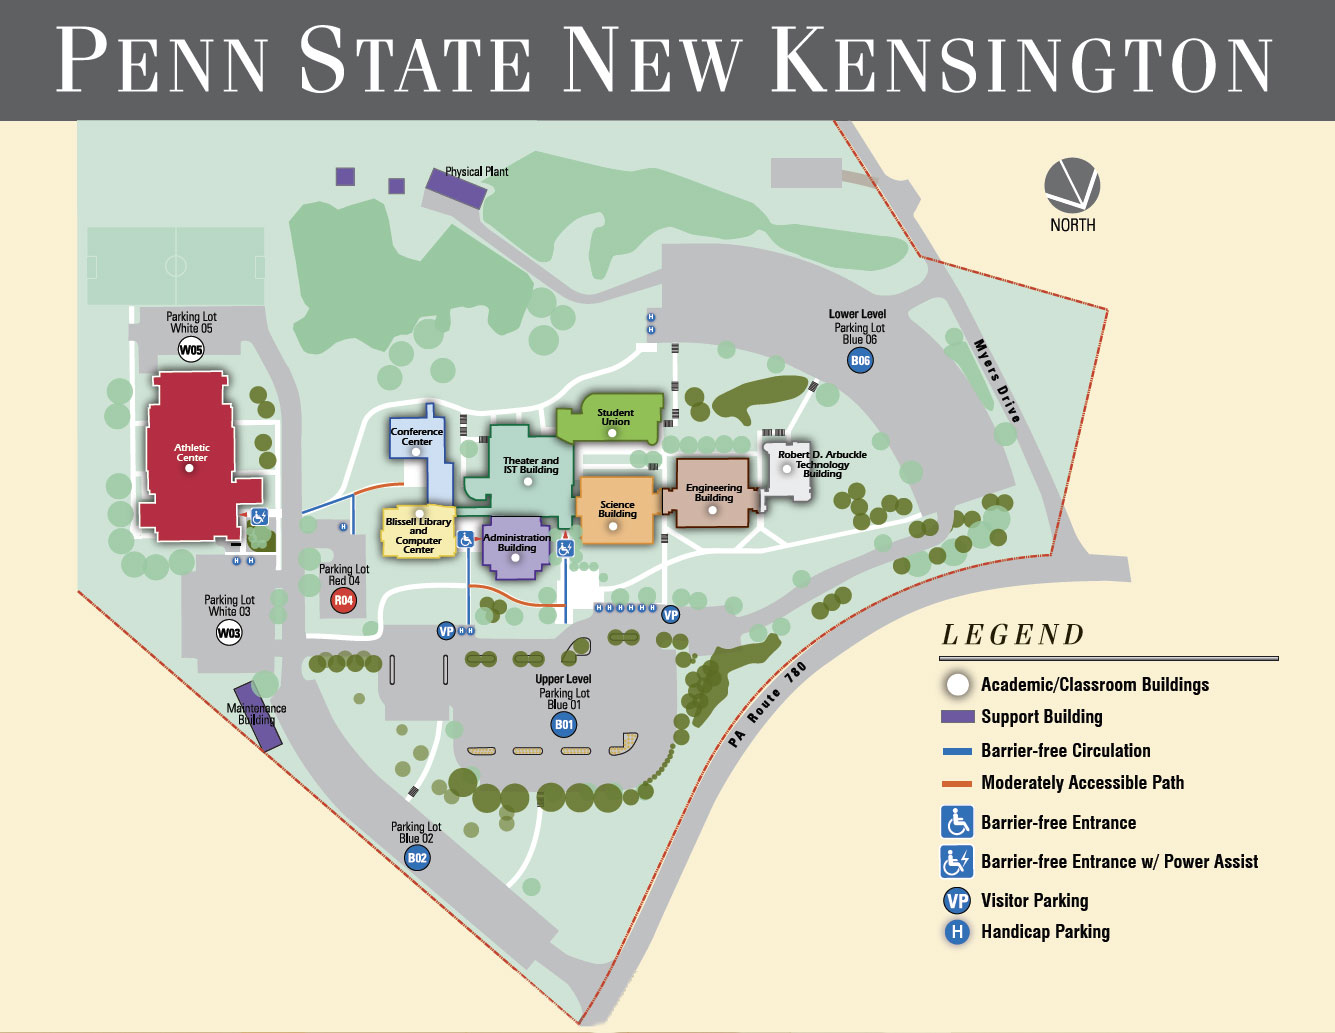 Penn State Location >> Penn State New Kensington Overview Collegedata College Profile